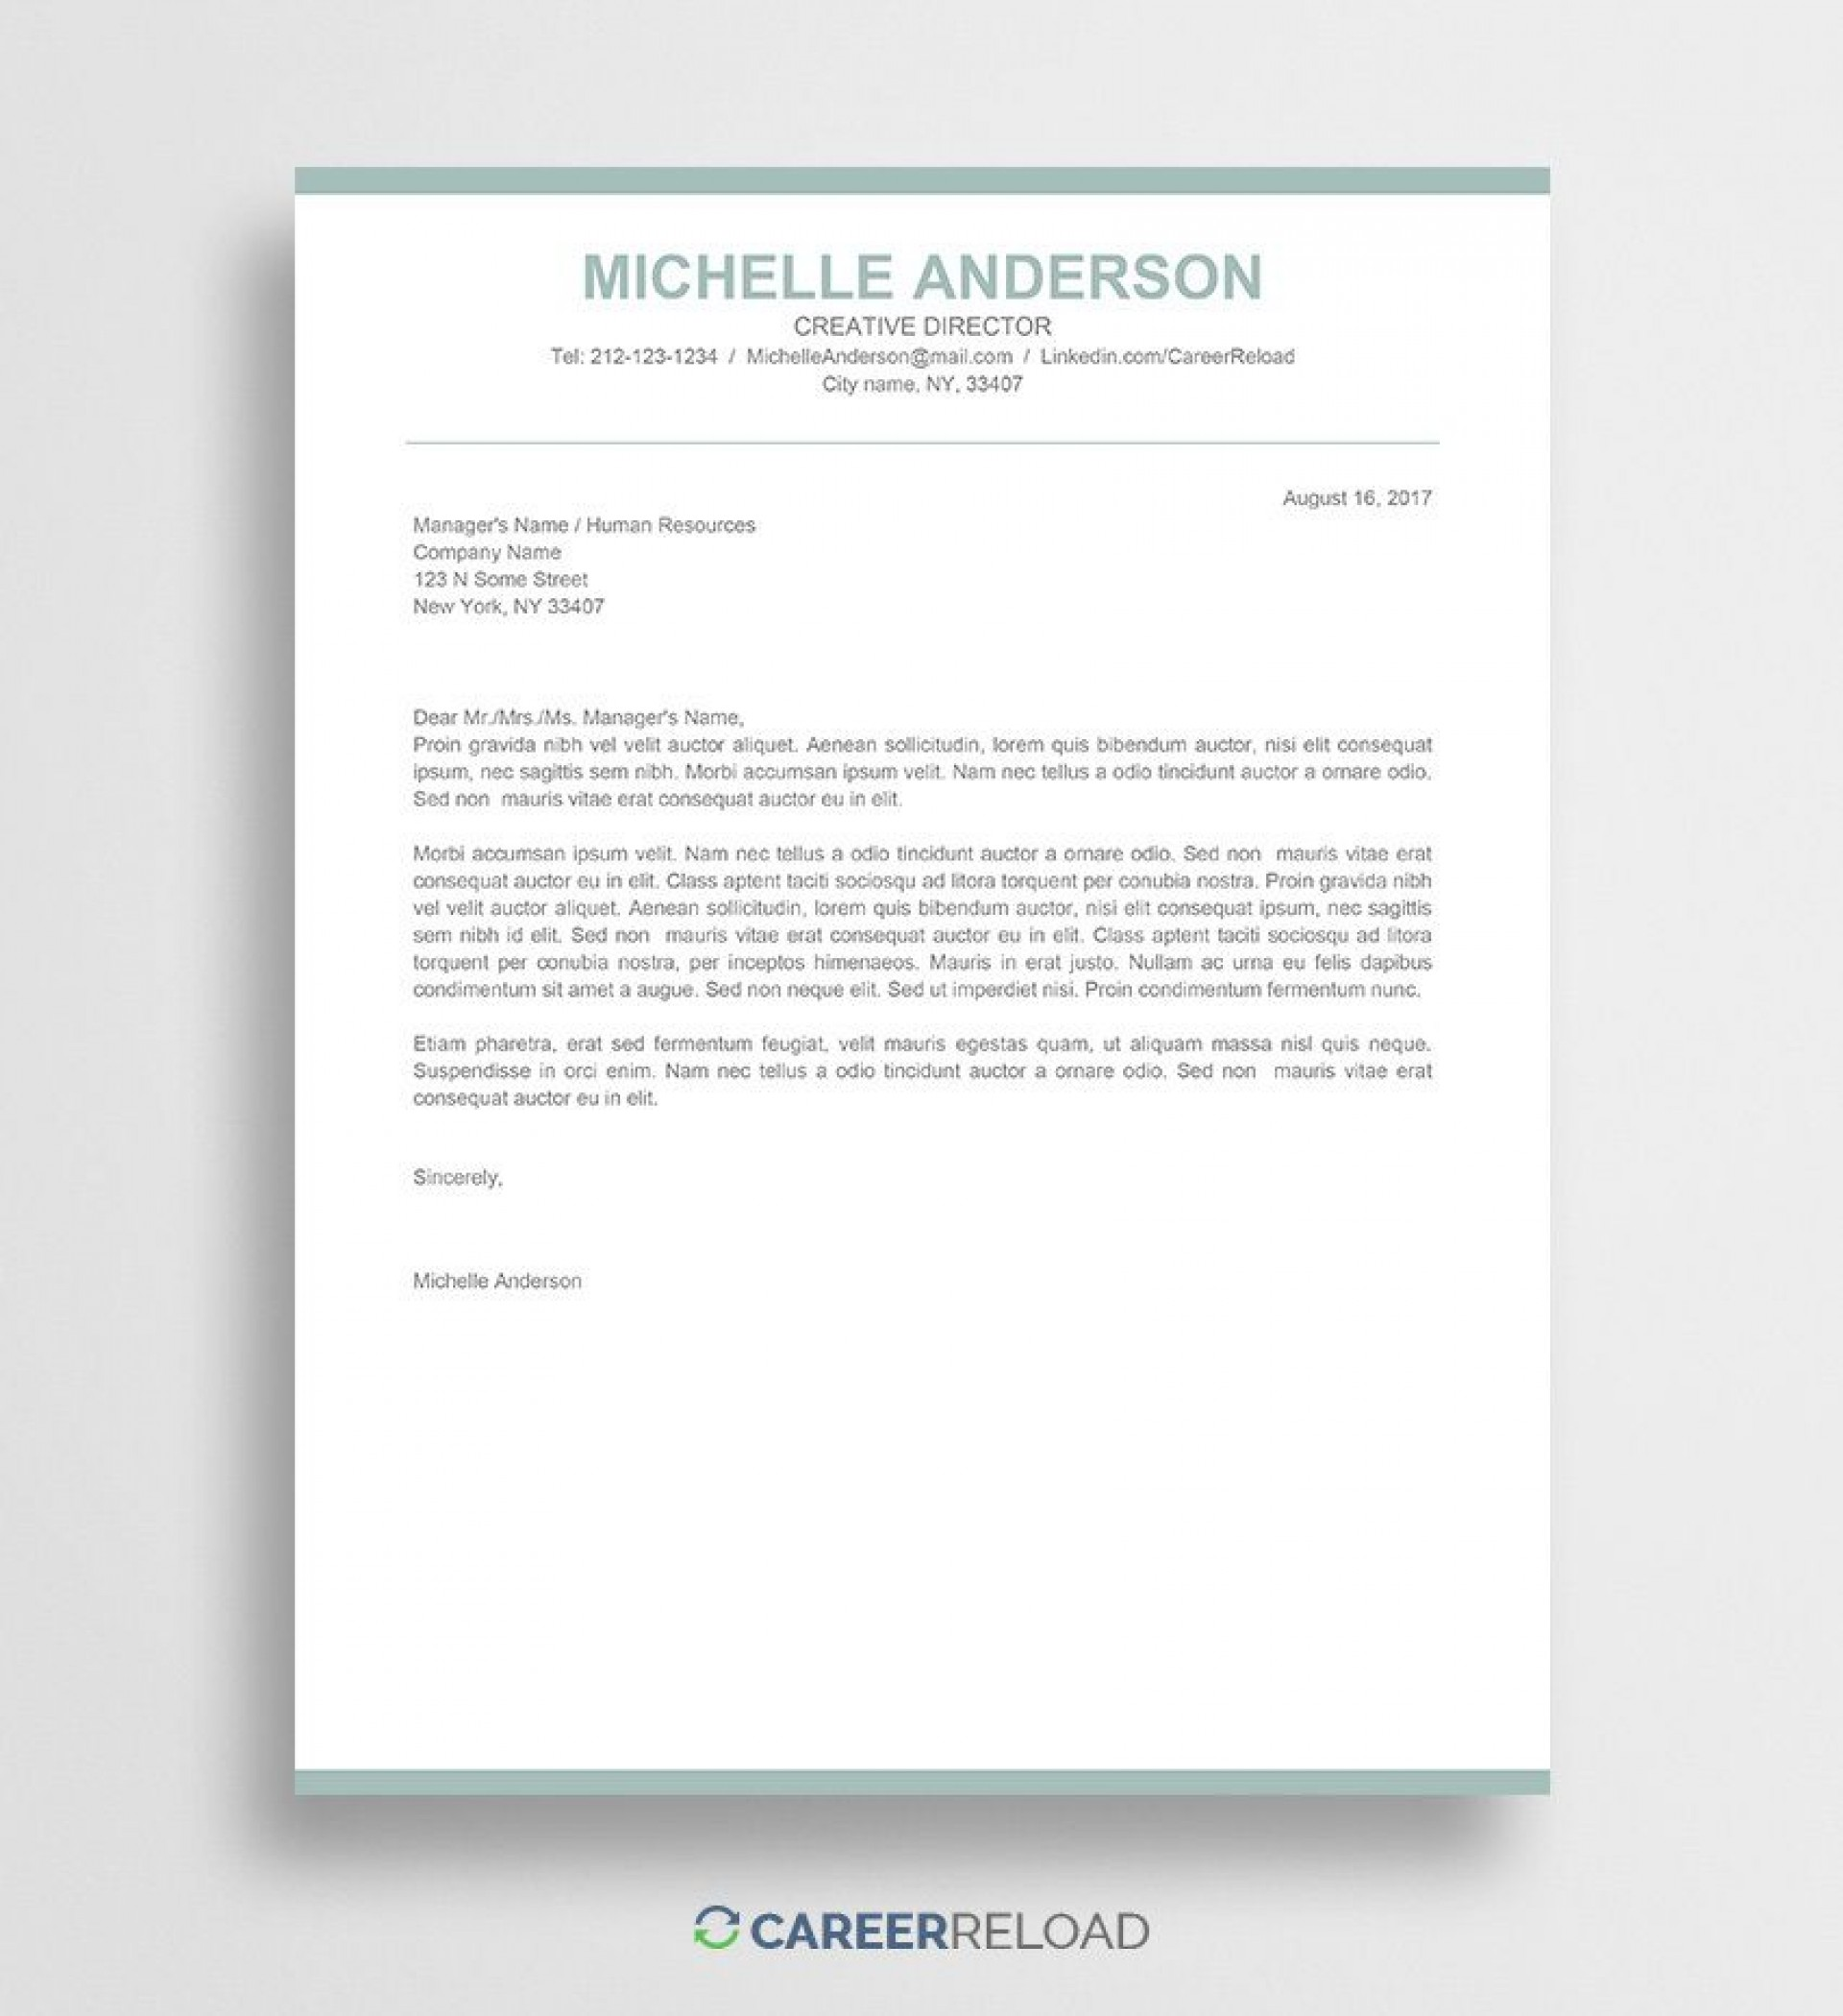 009 Stunning Microsoft Cover Letter Template Download Picture  Word Free1920